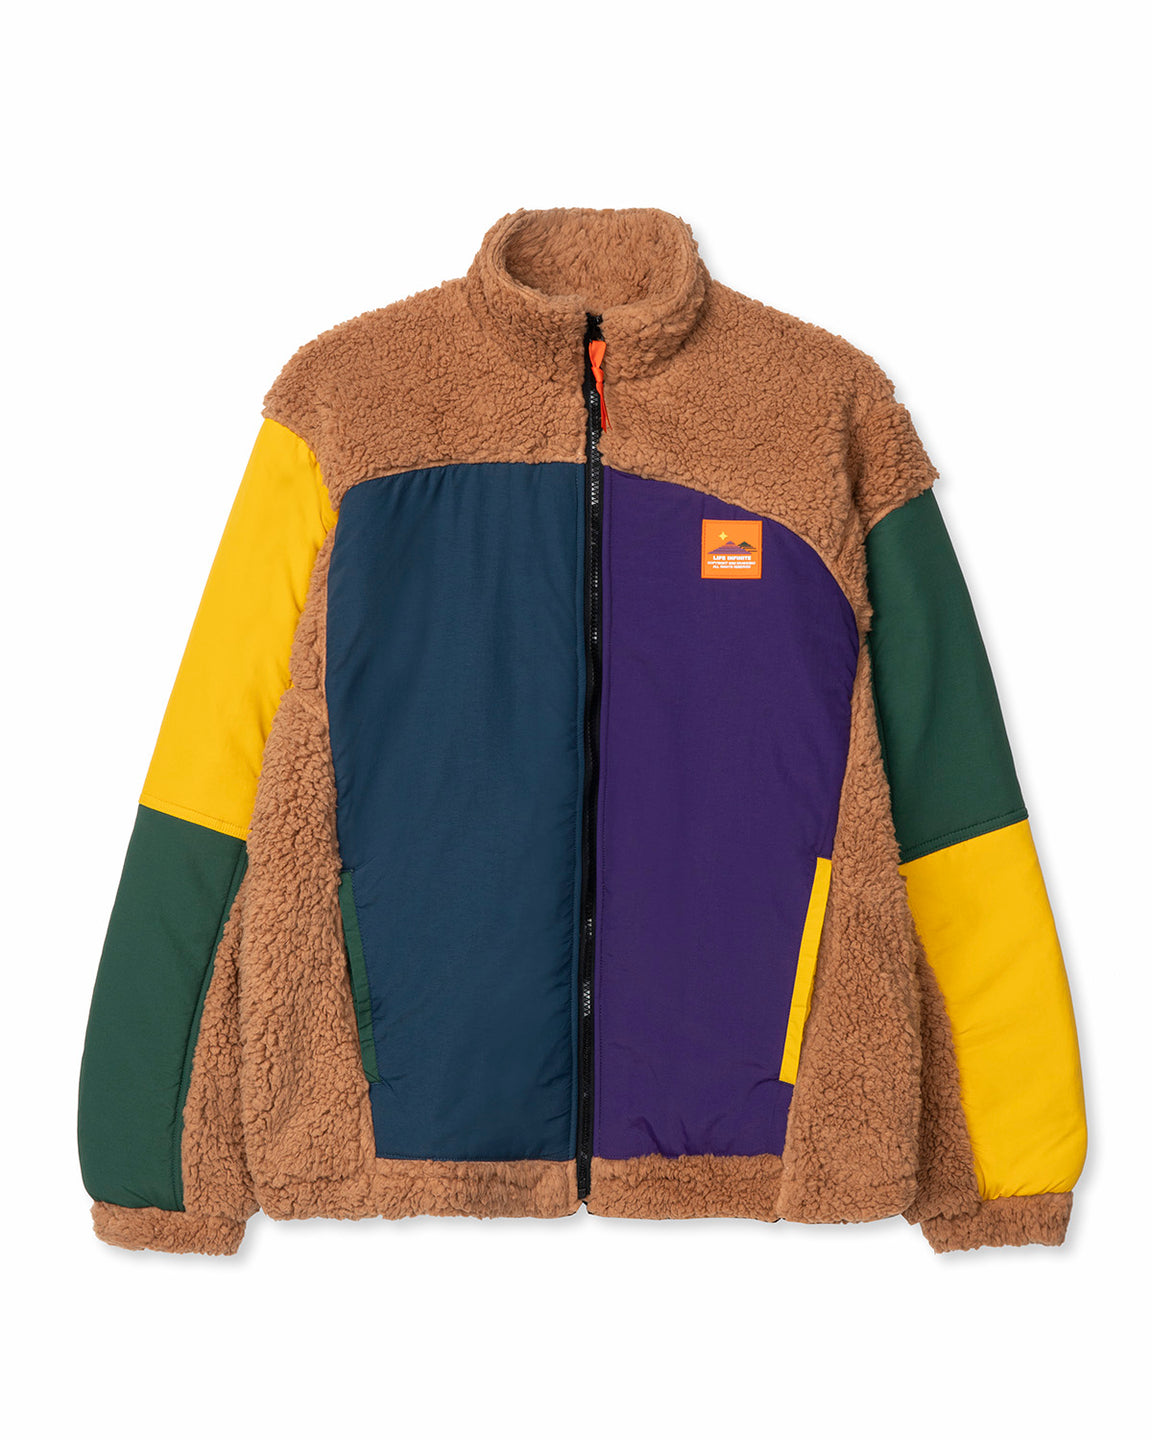 Runners Jacket - Multi